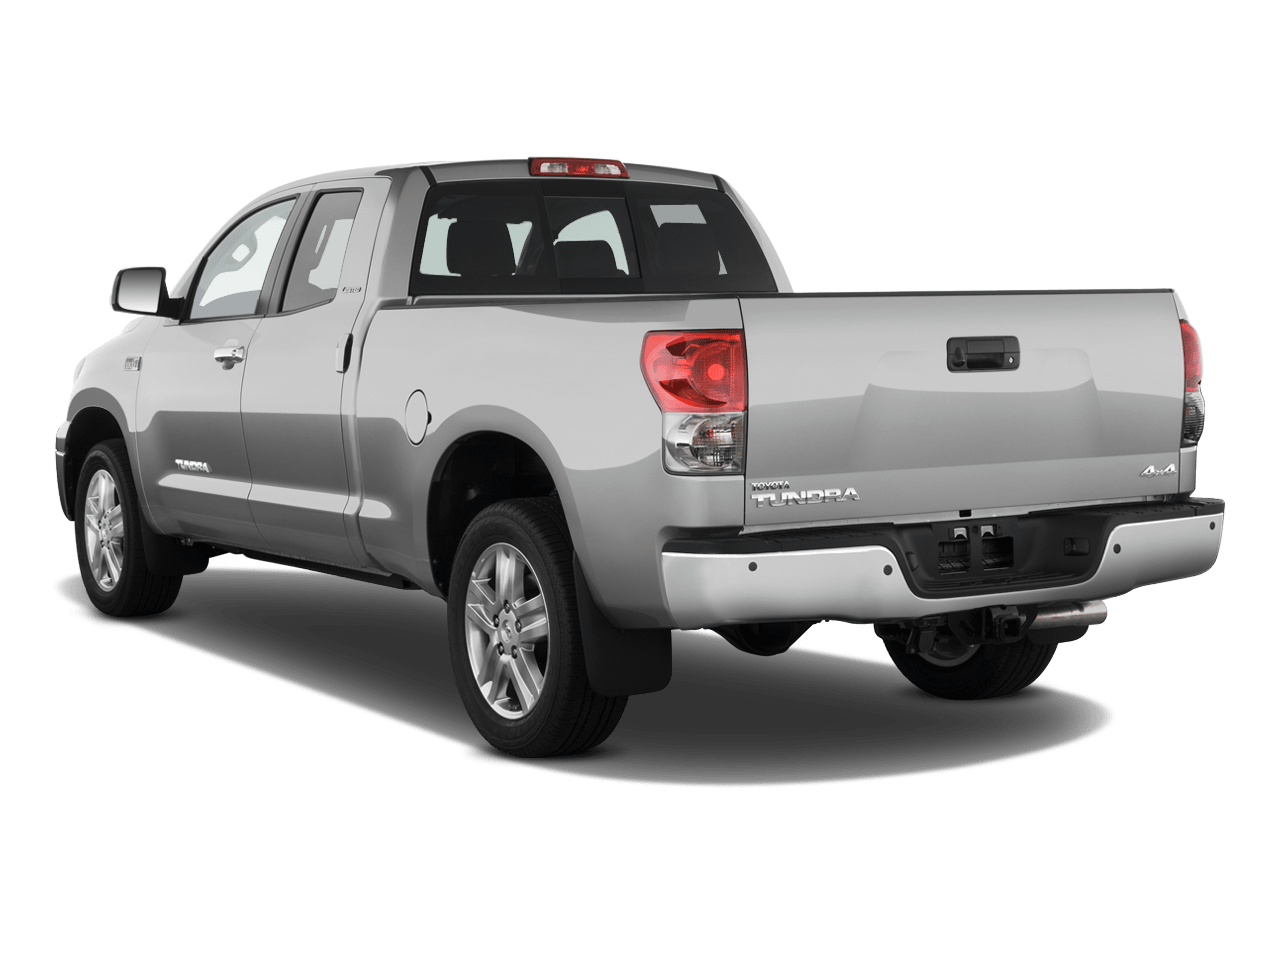 hight resolution of 2008 toyota tundra reviews research tundra prices specs motortrend d ball wiring diagram 2014 tundra